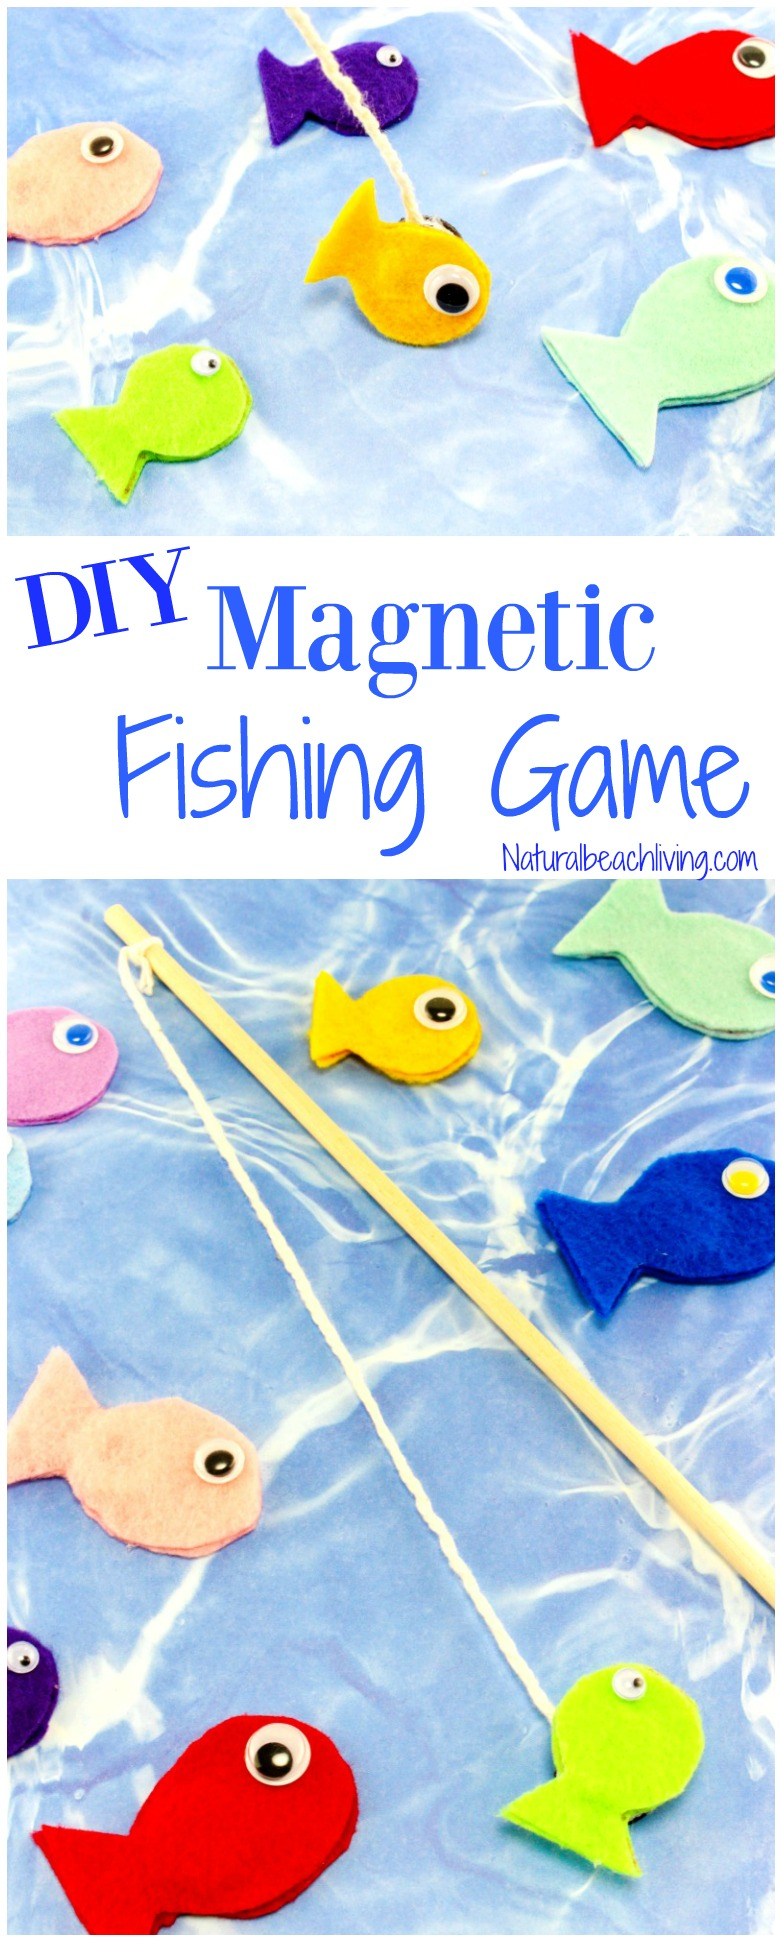 Fun felt diy magnetic fish game for kids natural beach living awesome diy fishing game perfect rainy day activity letter f alphabet activity this solutioingenieria Gallery